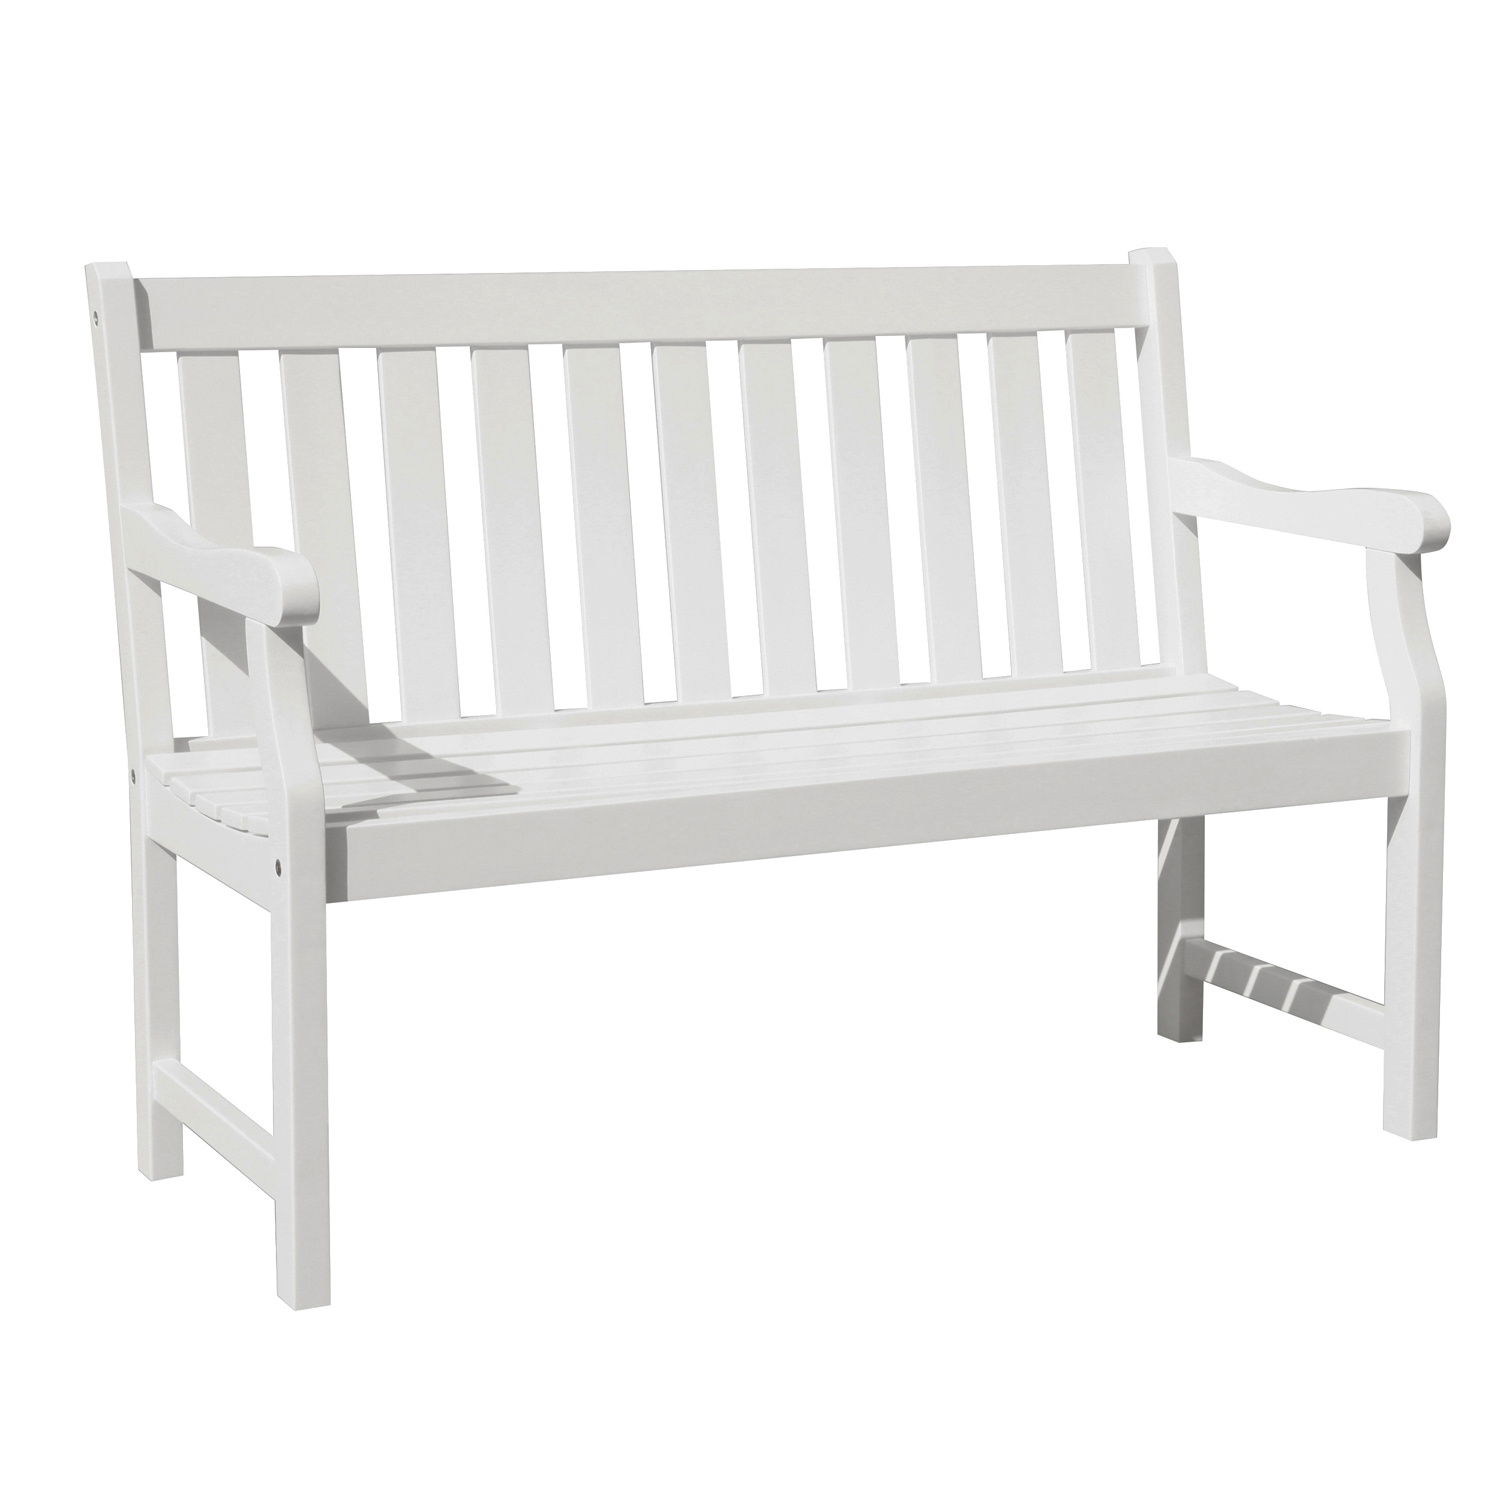 variation thumbnail of 4' Bradley White Outdoor Wood Garden Bench